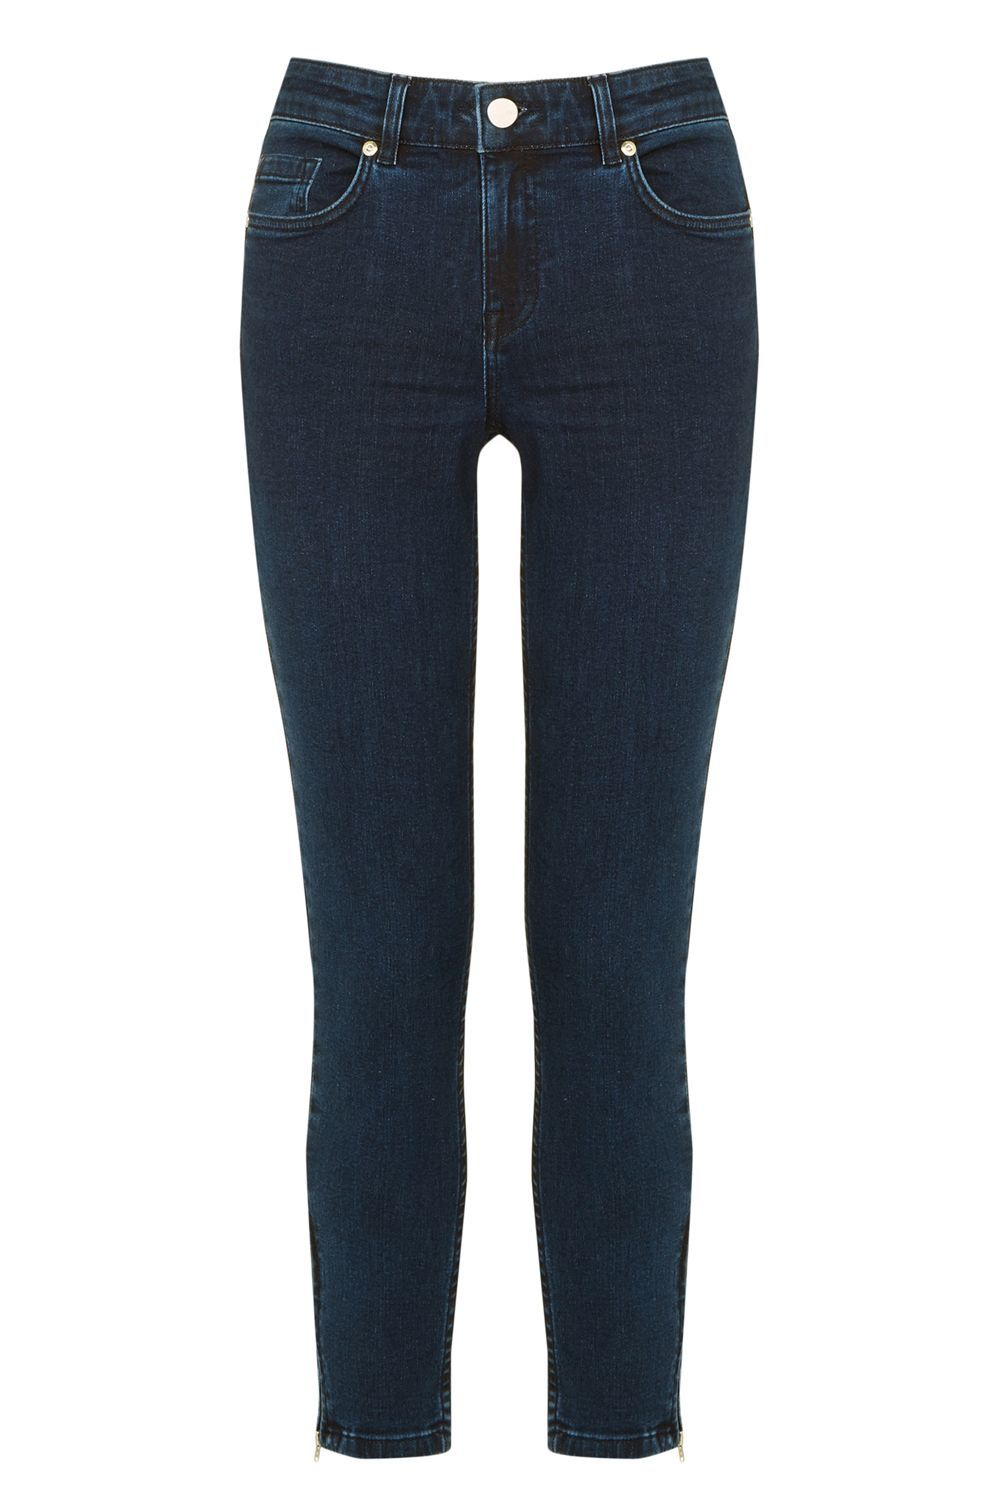 Havannah Isabella Skinny Crop, Denim - style: skinny leg; length: standard; pattern: plain; pocket detail: traditional 5 pocket; waist: mid/regular rise; predominant colour: navy; occasions: casual; fibres: cotton - stretch; jeans detail: dark wash; texture group: denim; pattern type: fabric; season: s/s 2016; wardrobe: basic